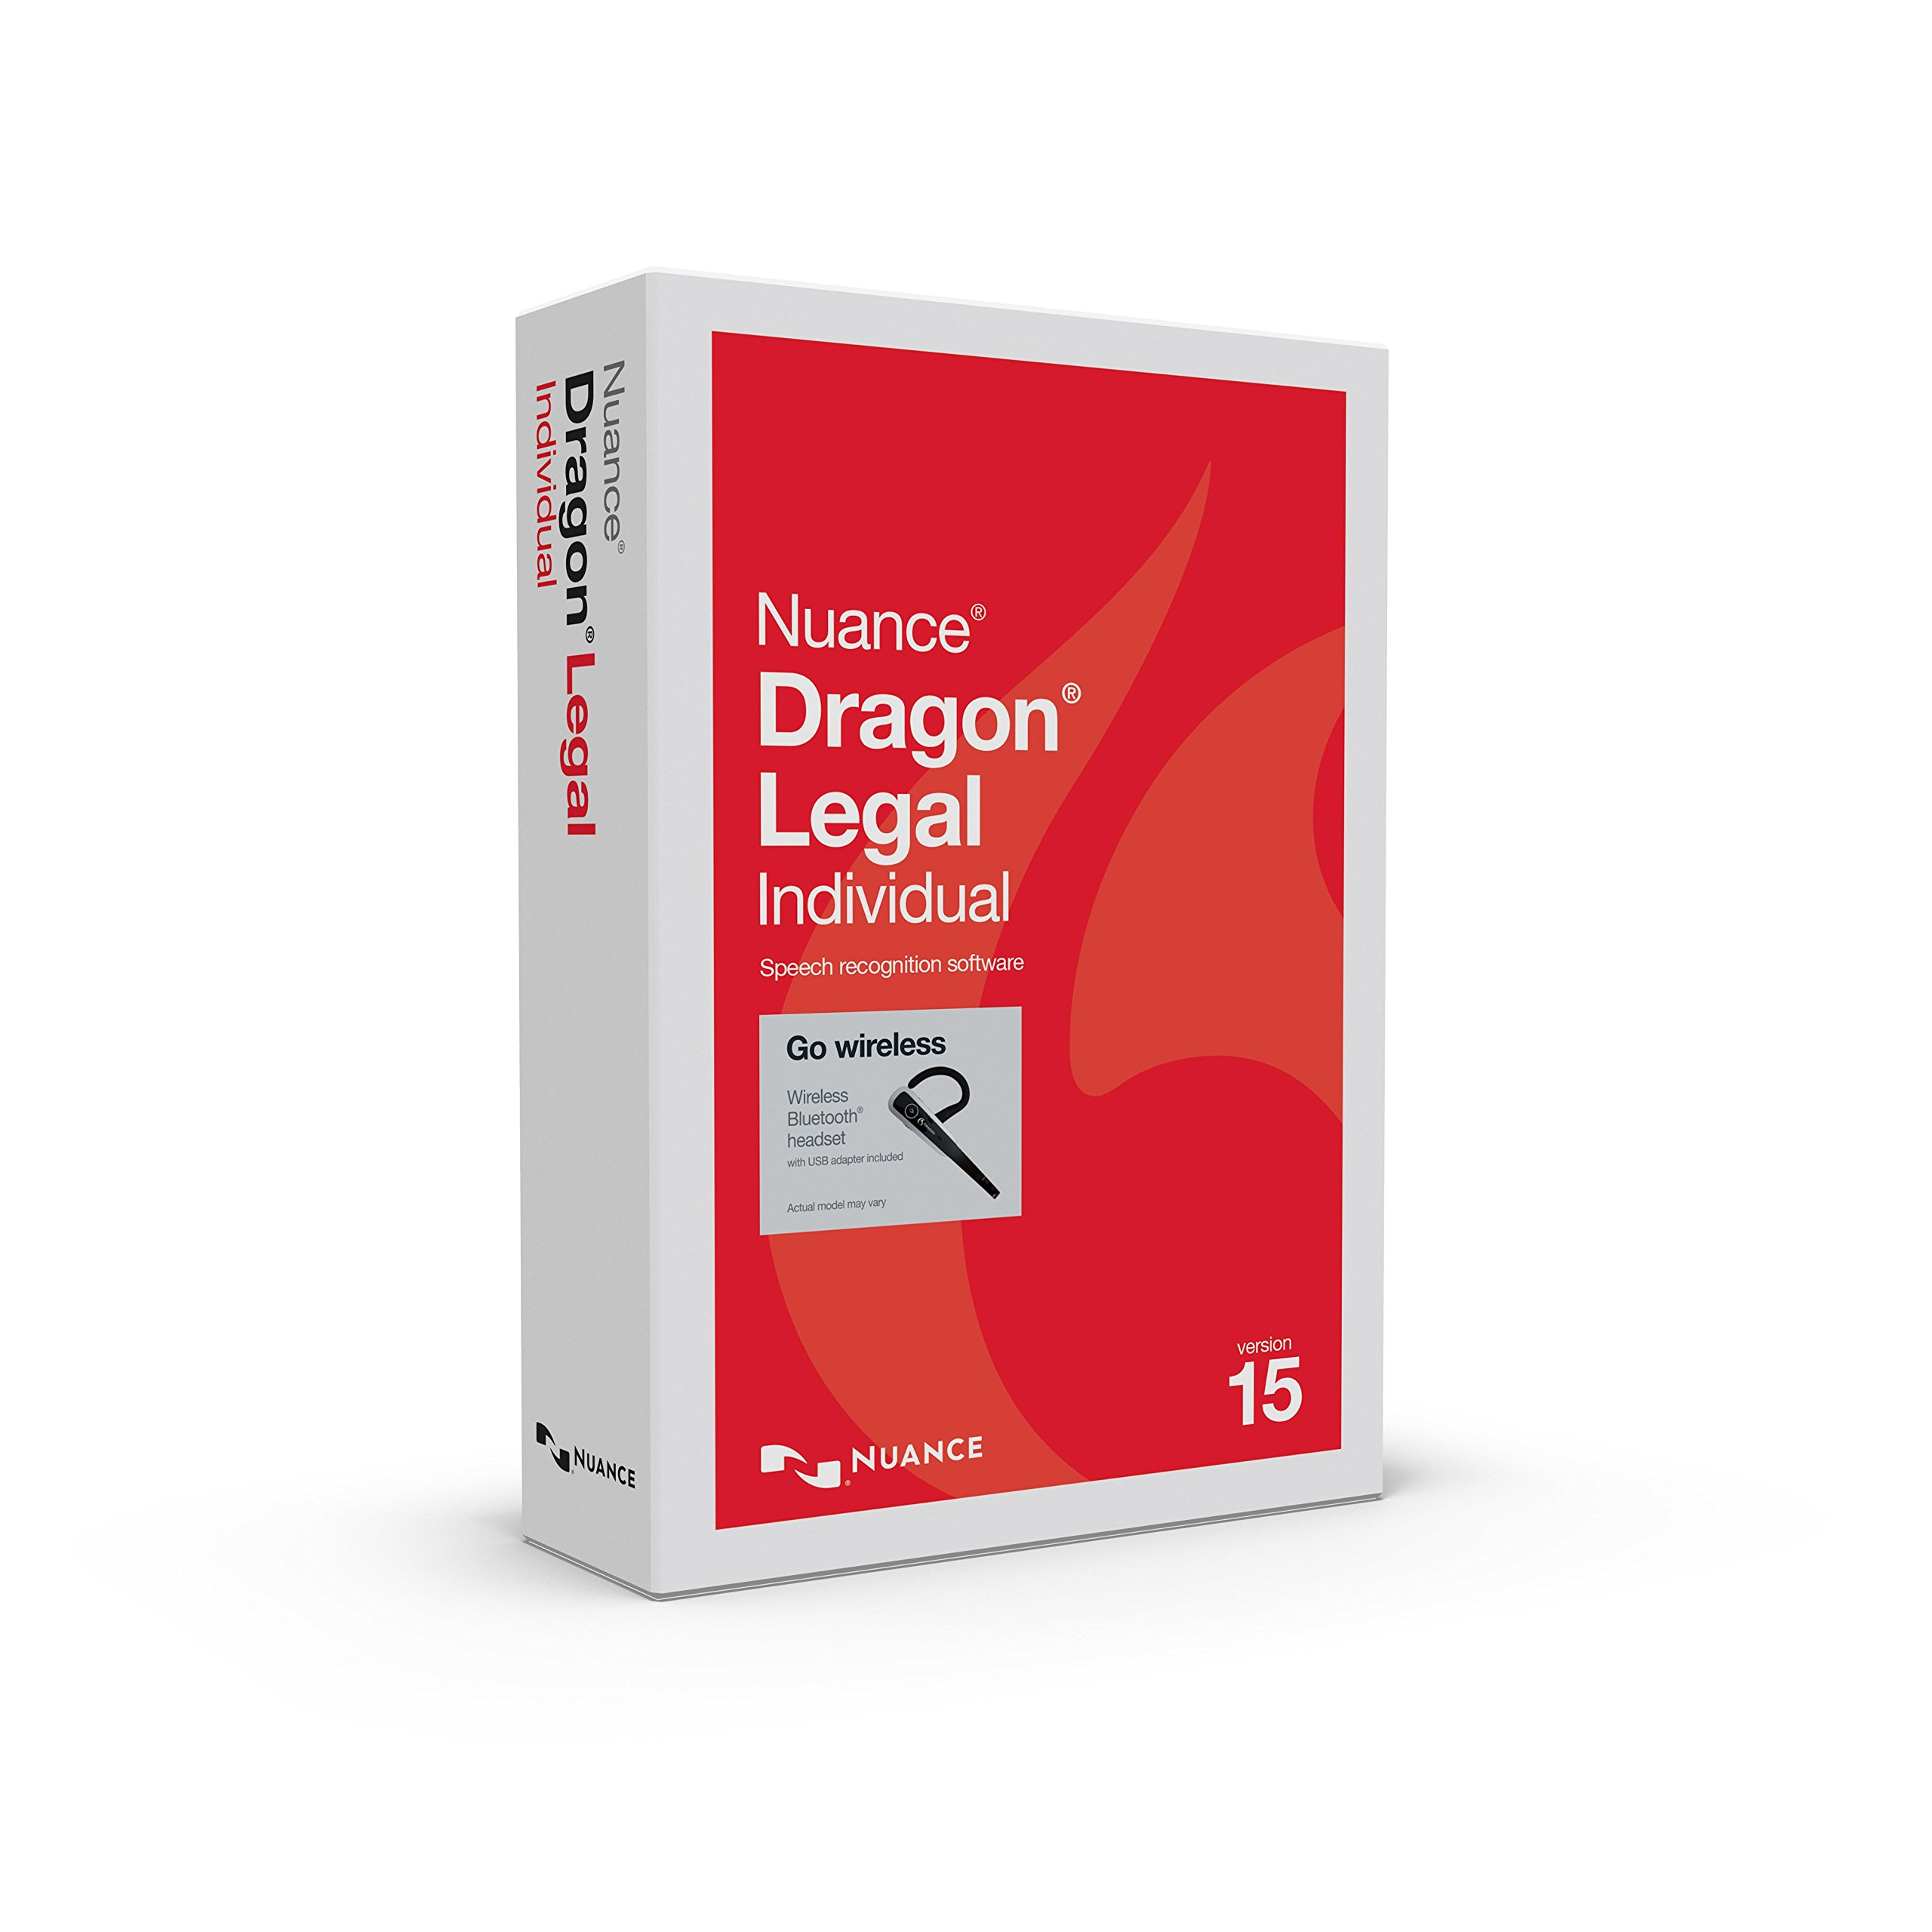 Dragon Legal Individual 15 with Bluetooth Headset by Nuance Dragon